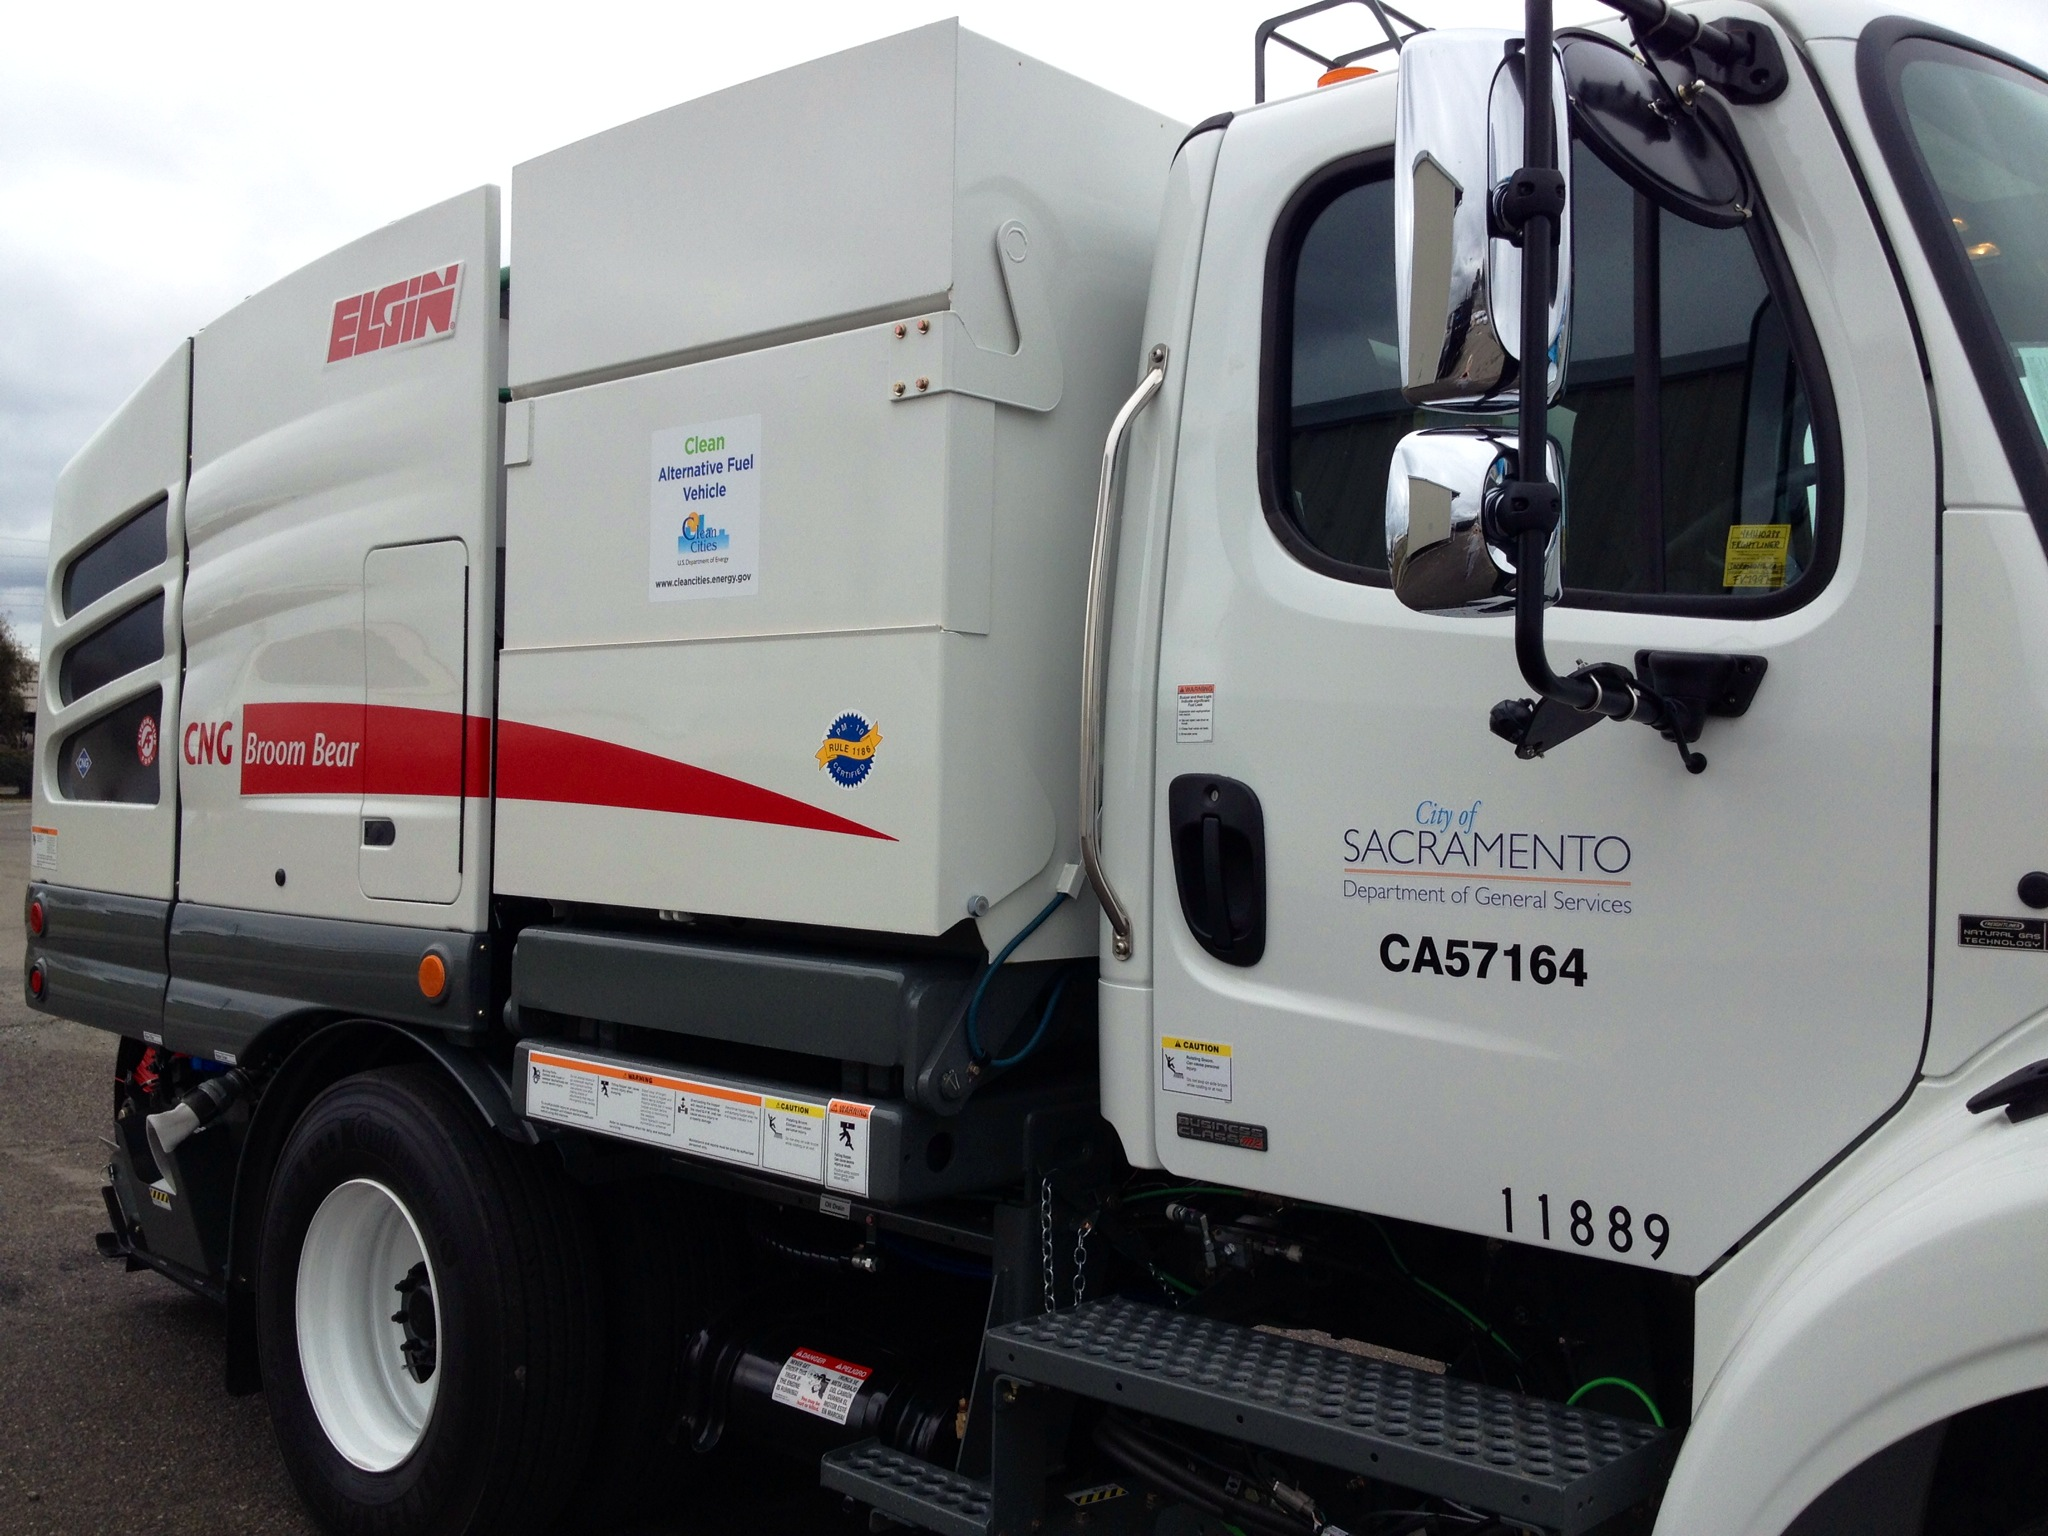 Street sweepers and city buses, to name a few, are discovering the value of fueling up on CNG.